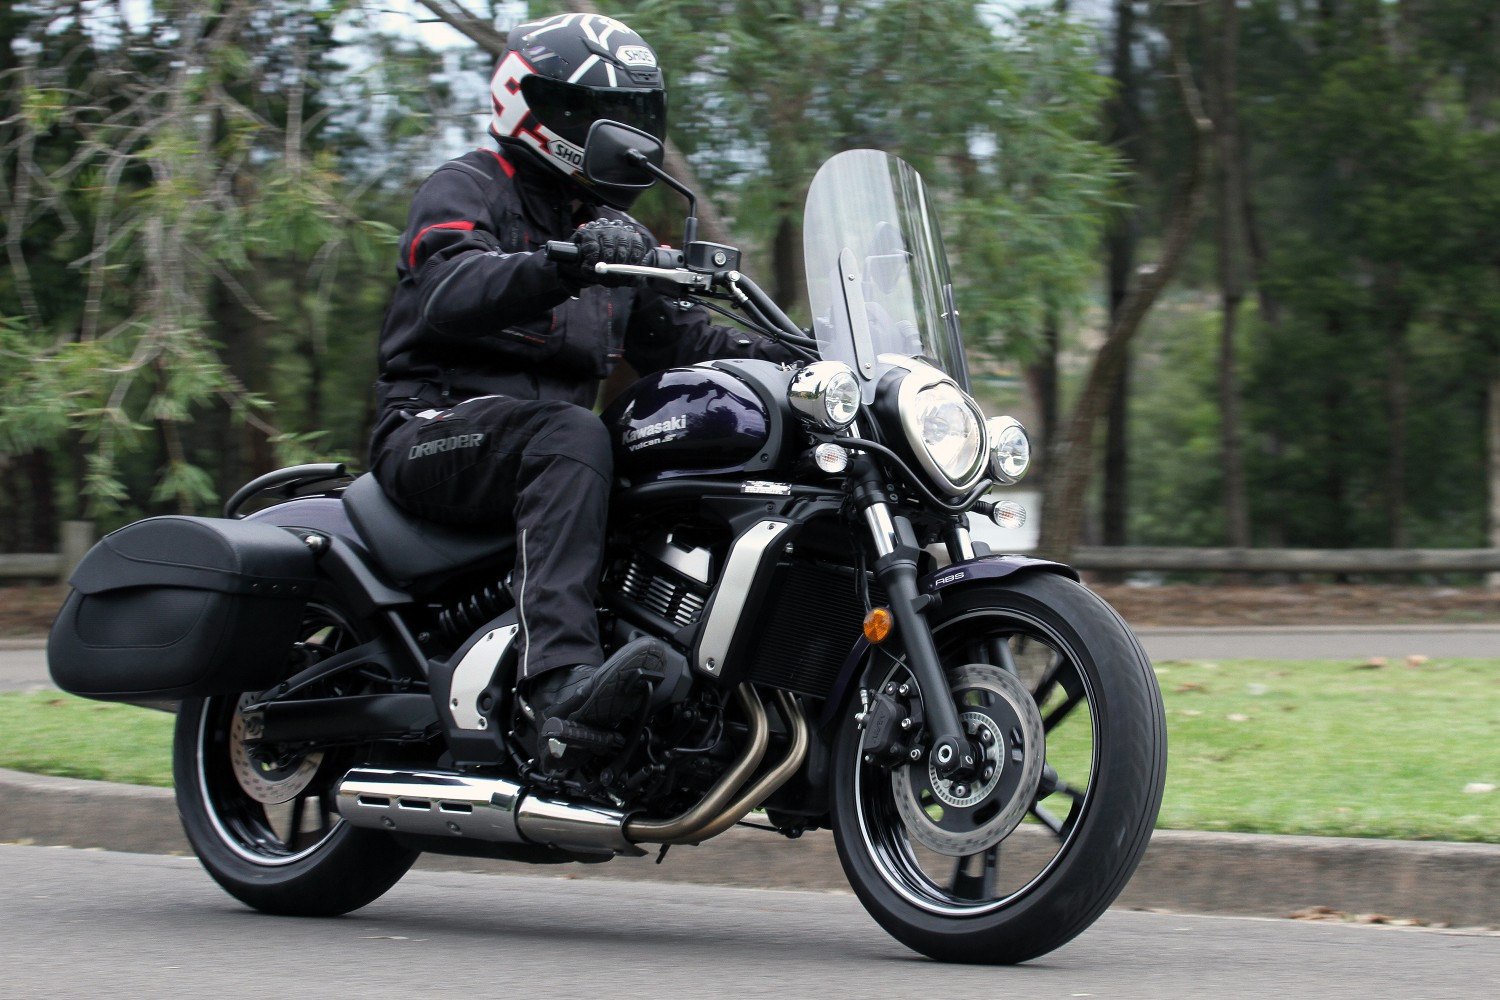 Review: 2015 Kawasaki Vulcan S LAMS - Bike Review